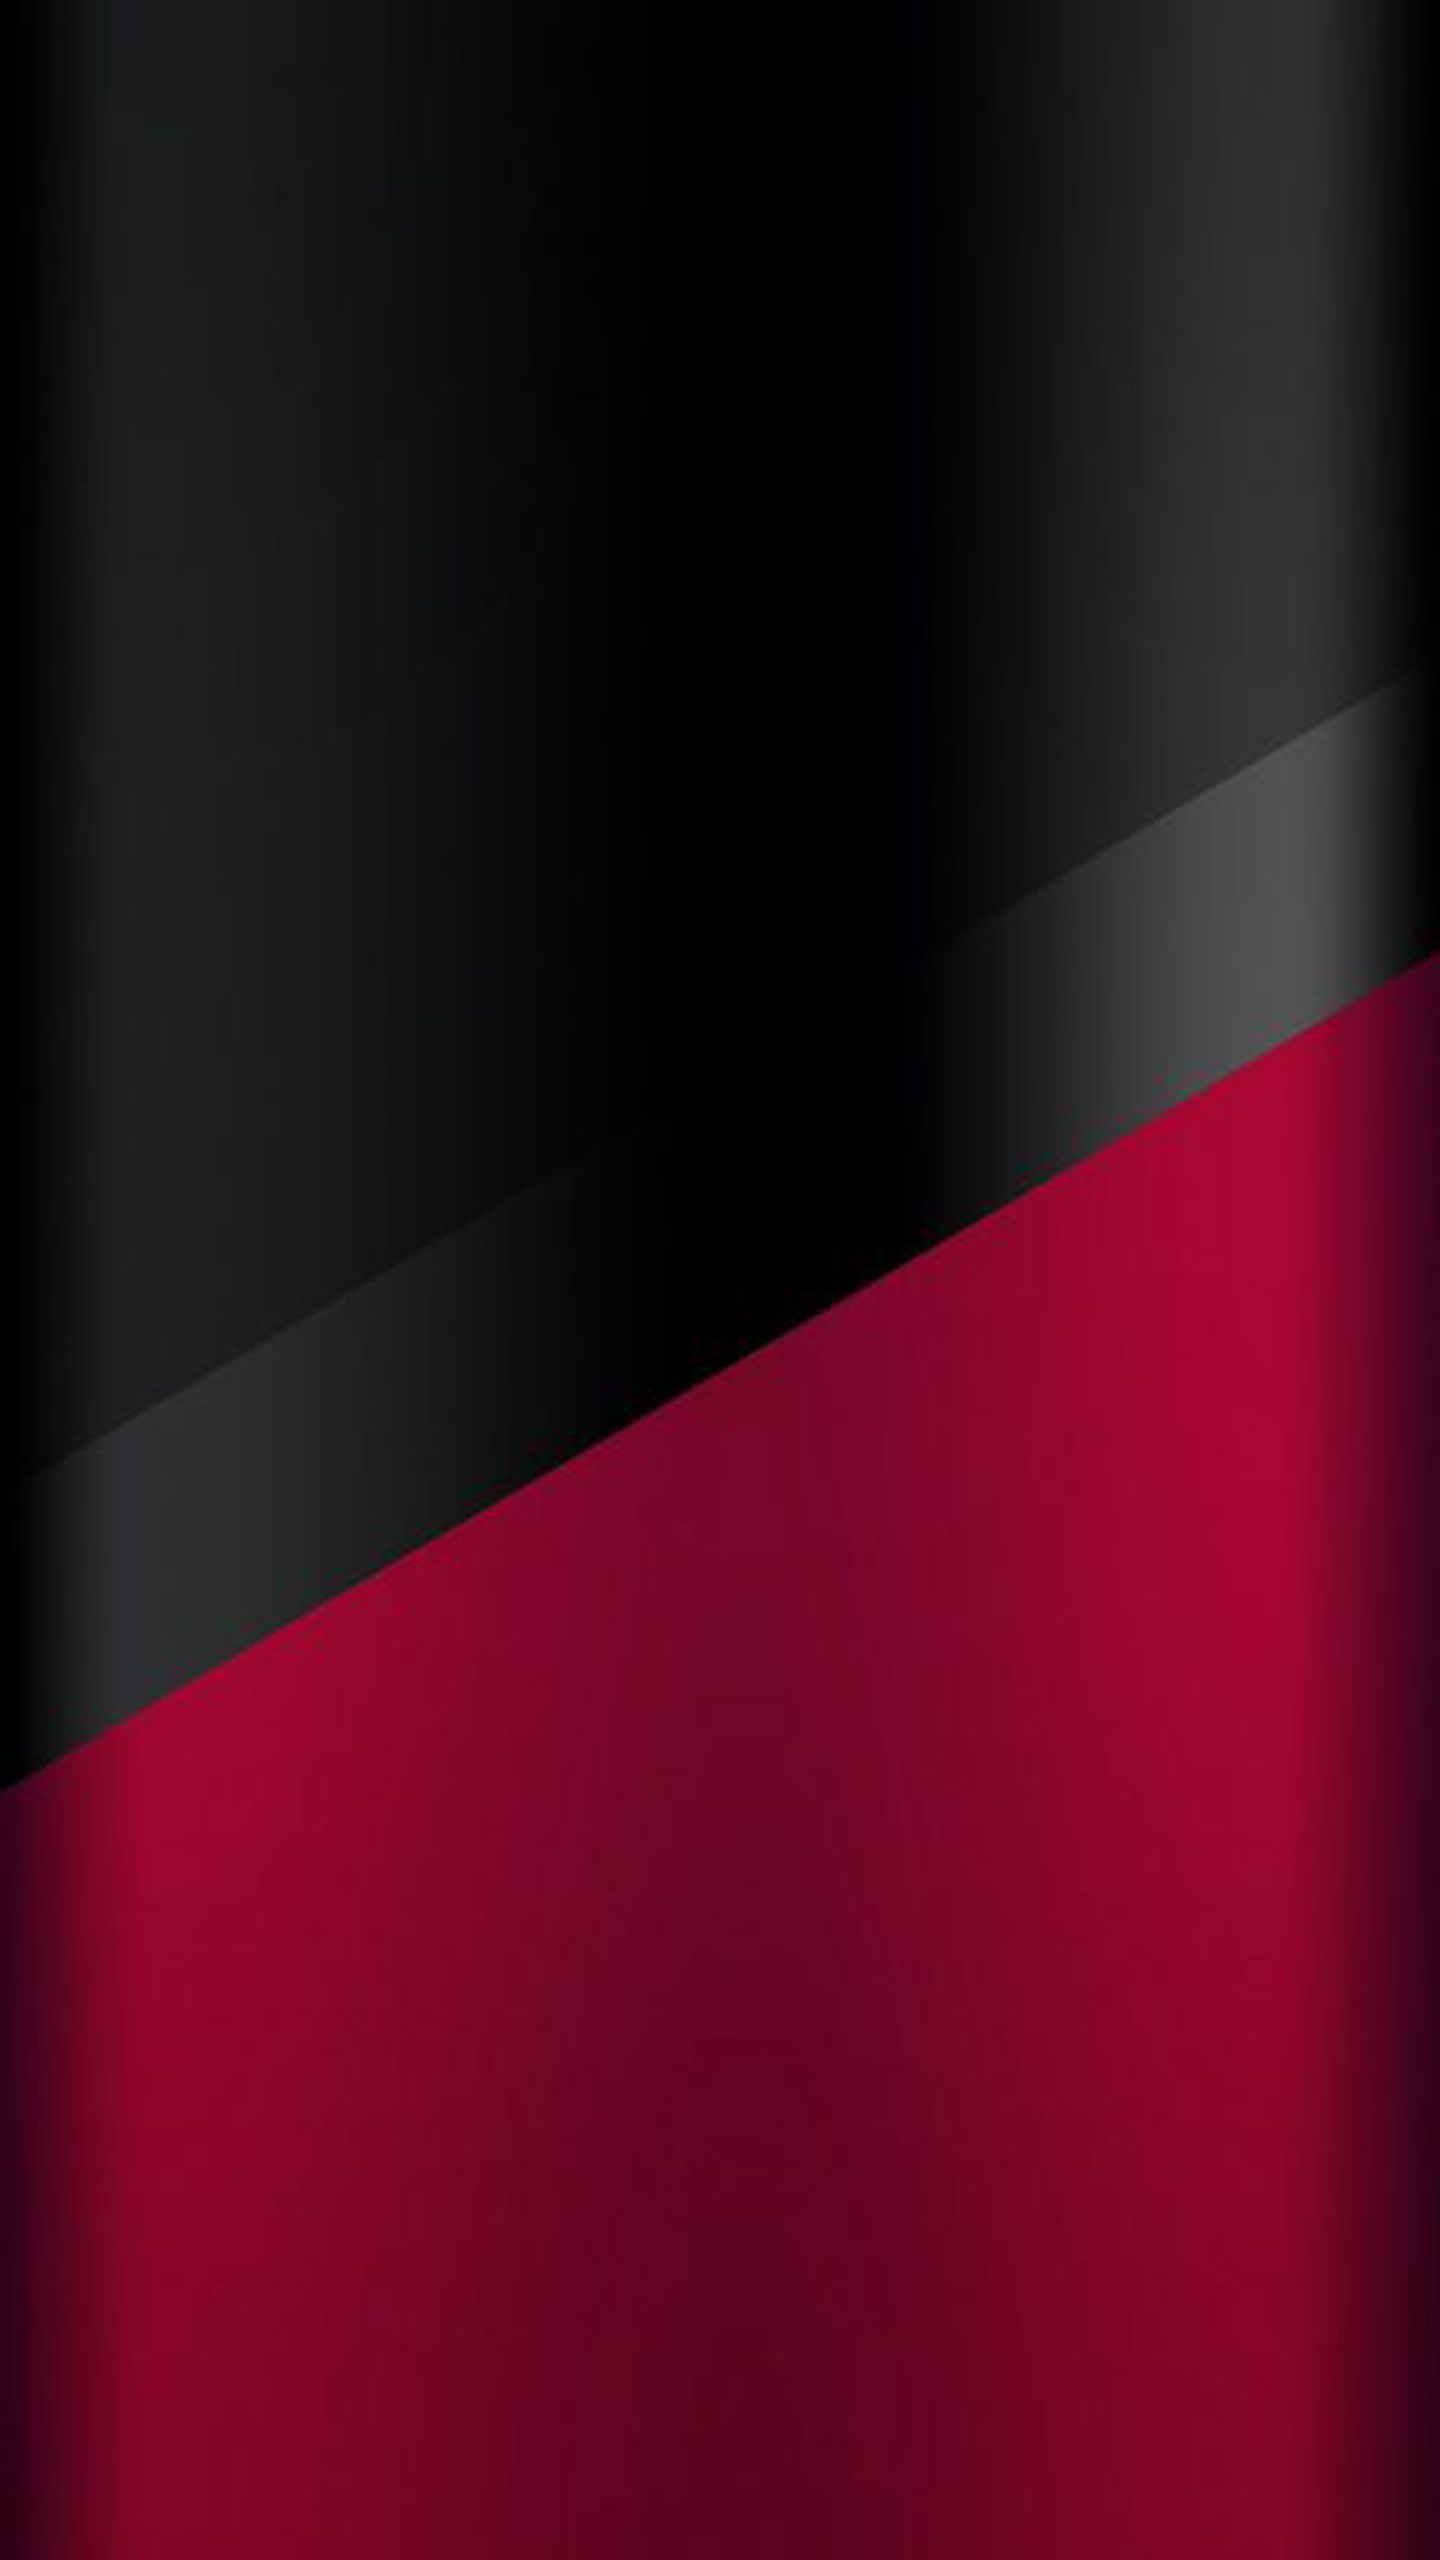 Dark S7 Edge Wallpaper 03 Black And Red Galaxy S8 Plus Wallpaper